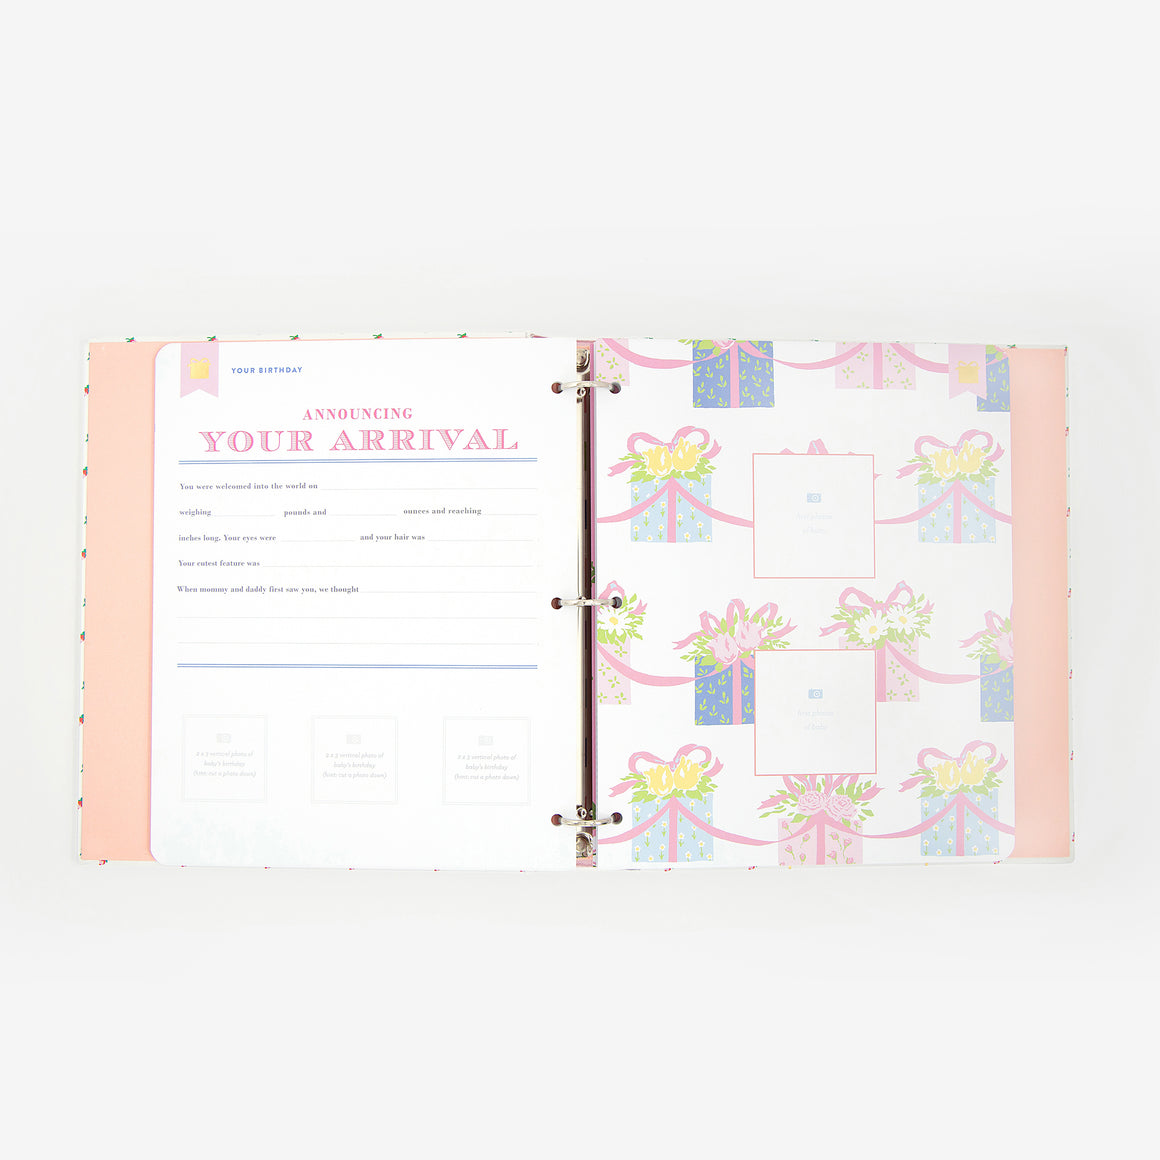 TBBC + Simplified Baby Book, Port Royal Rosebud